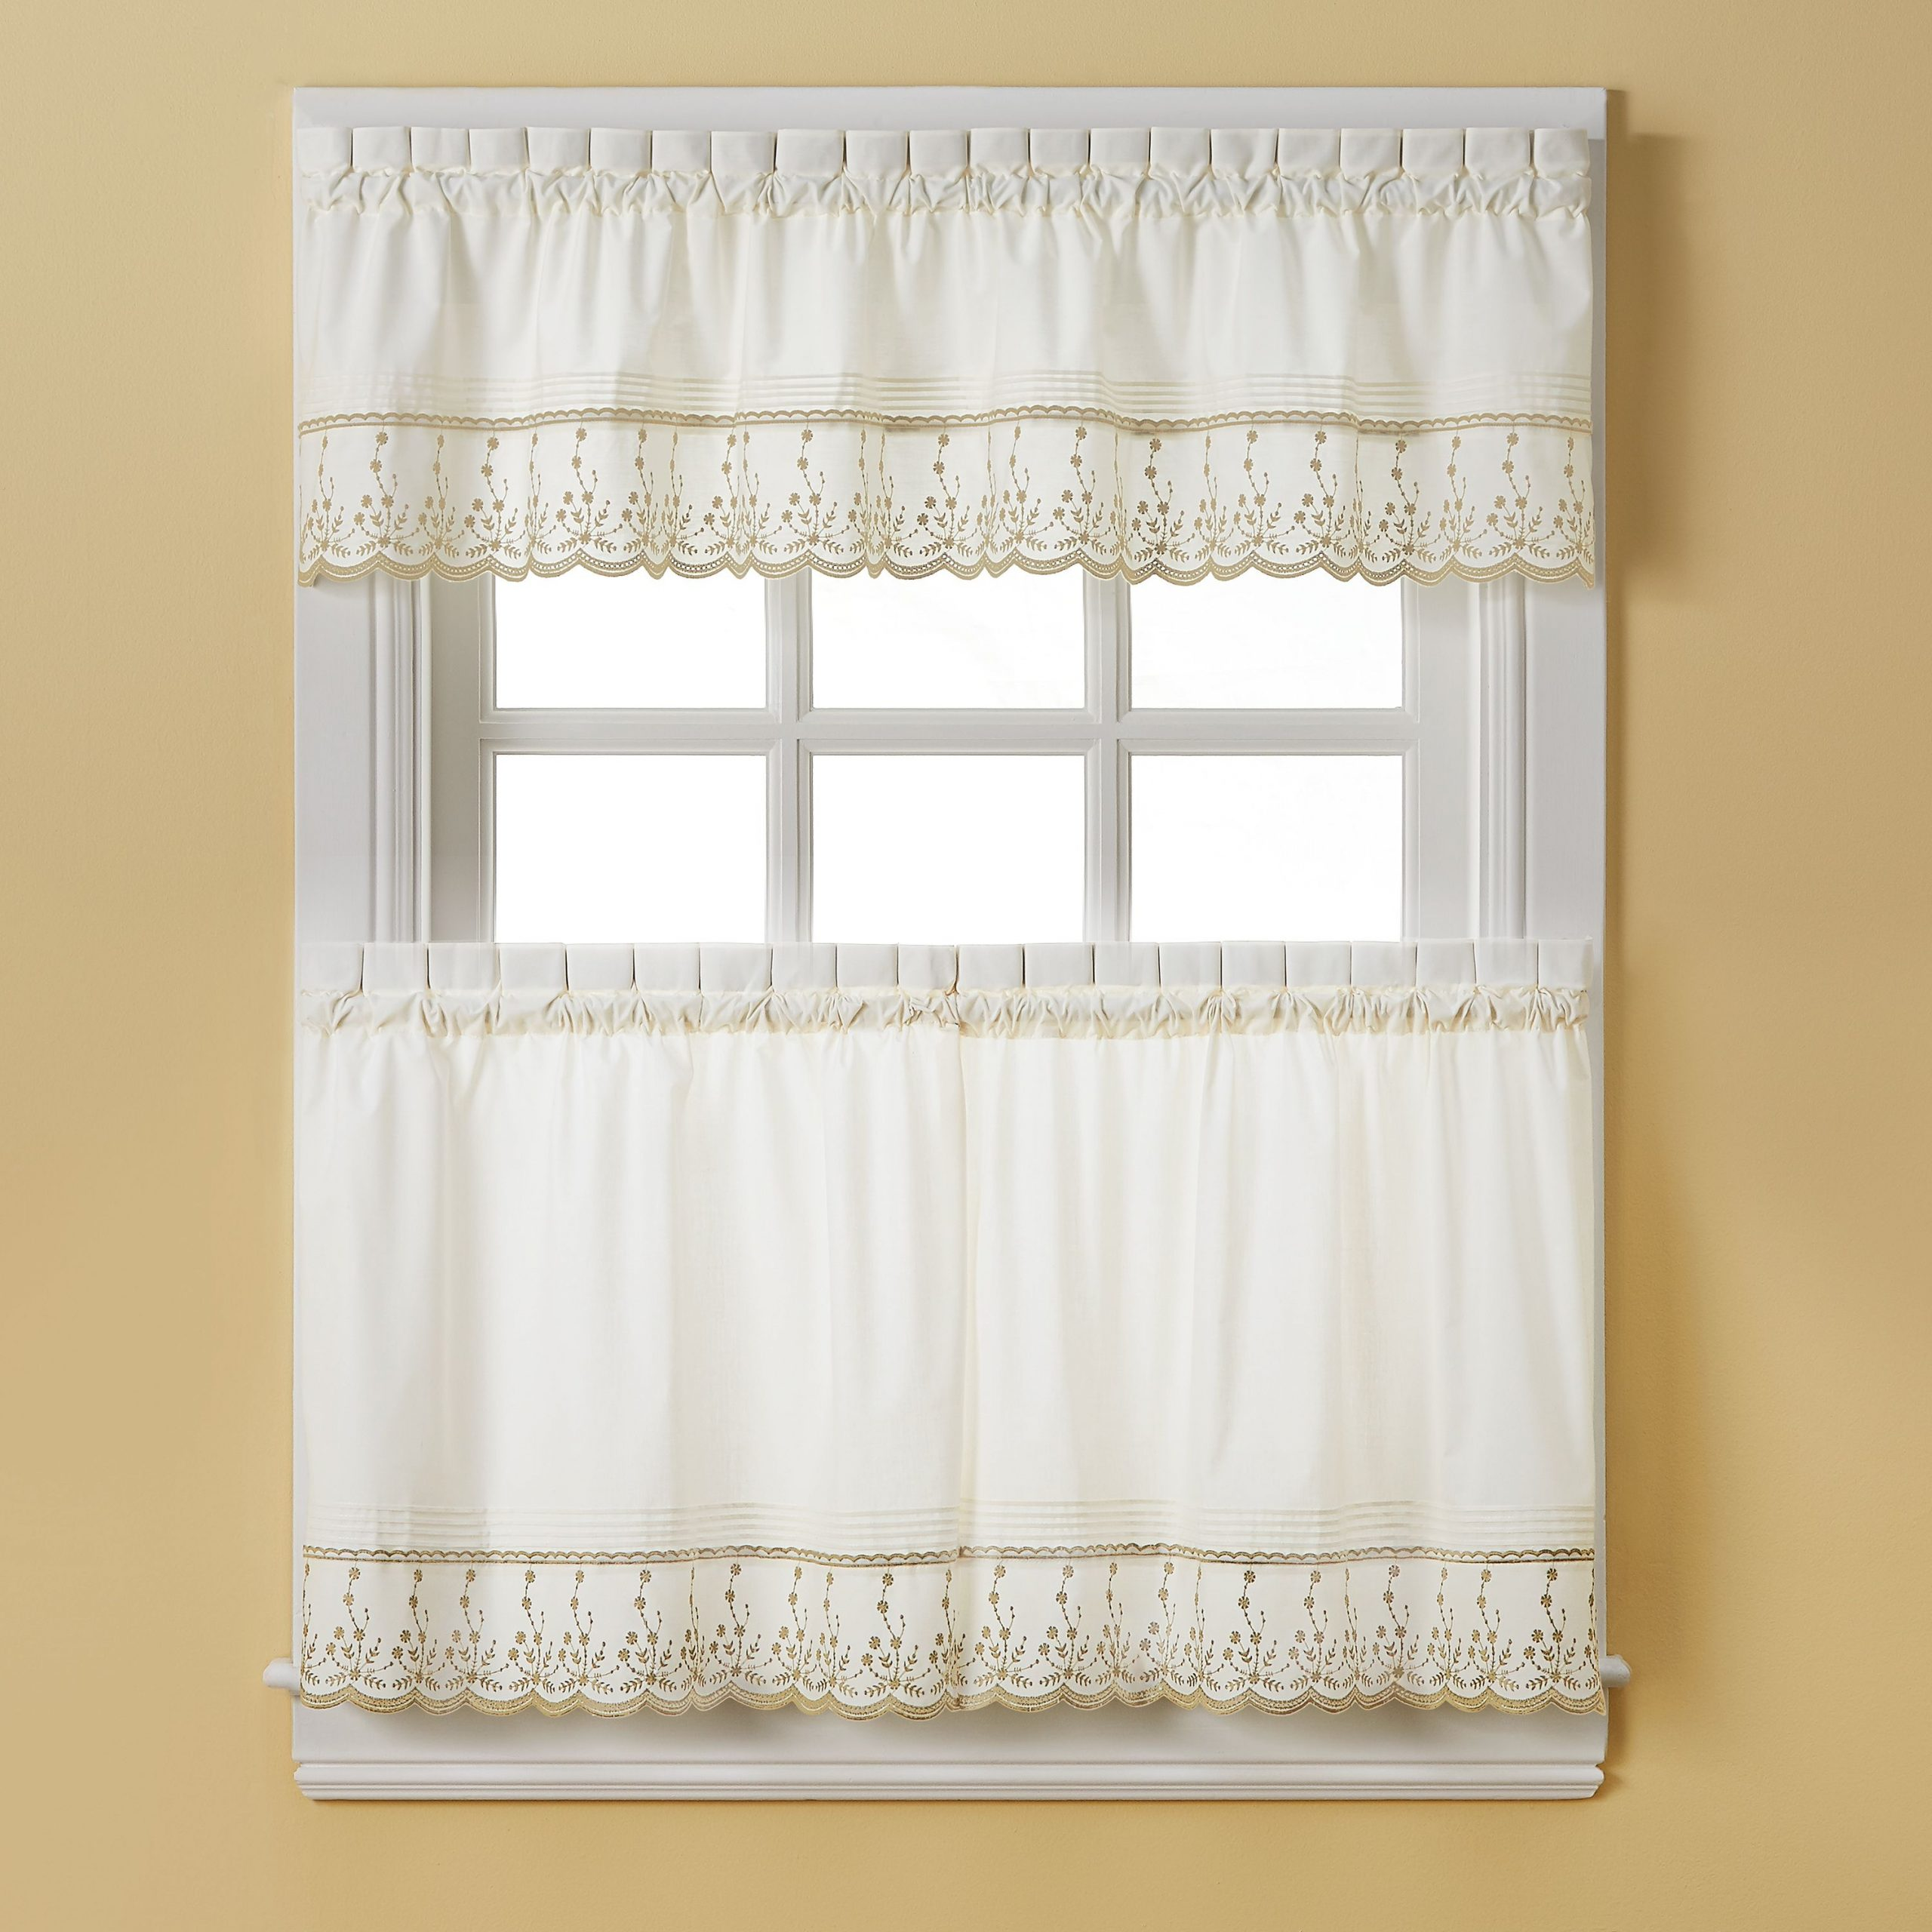 Preferred Pinterest Inside French Vanilla Country Style Curtain Parts With White Daisy Lace Accent (View 10 of 20)